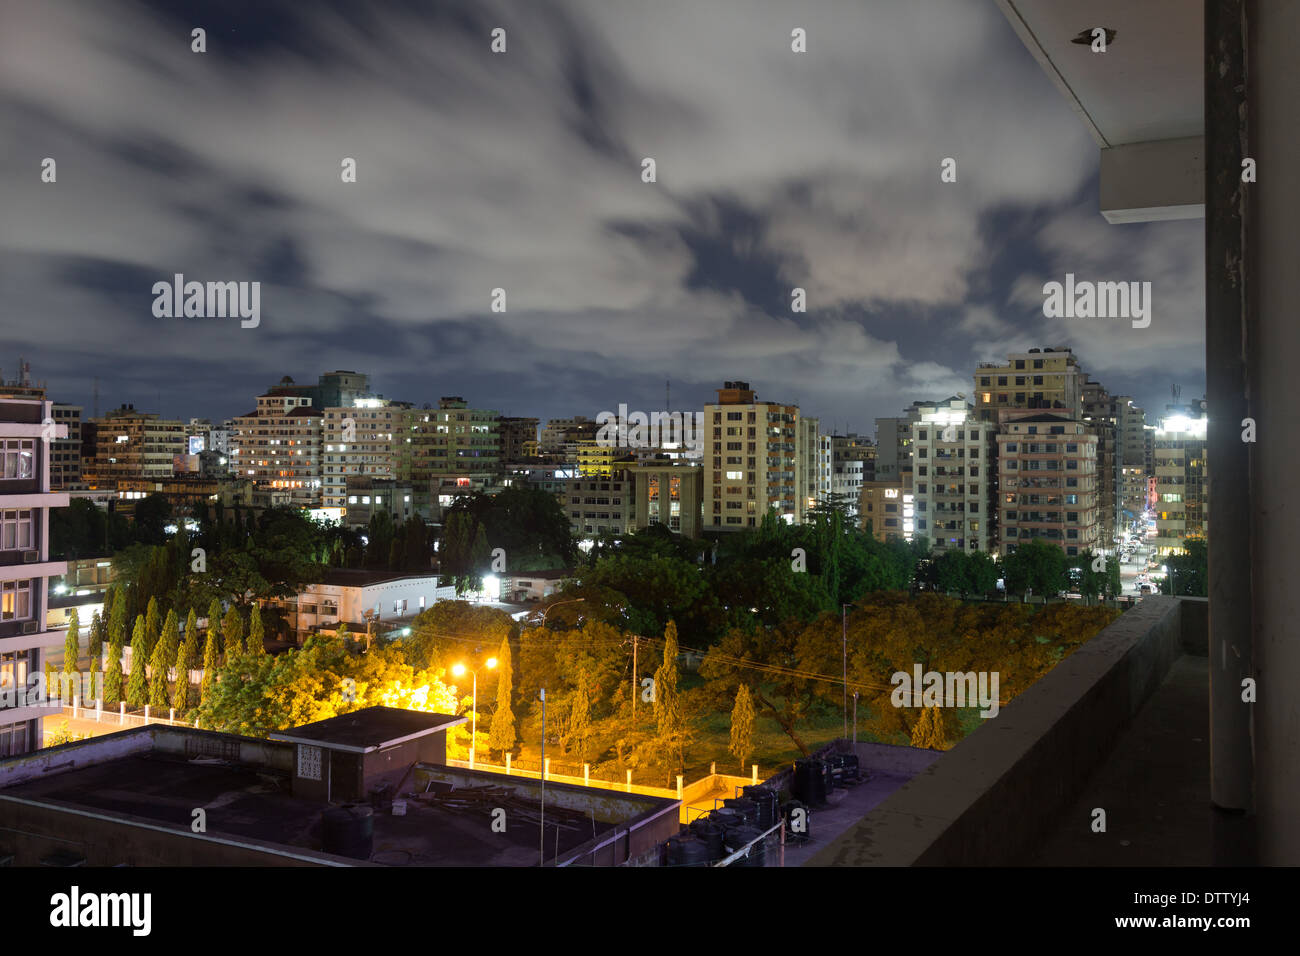 Night view of the downtown area of the city of Dar Es Salaam, Tanzania, at night - Stock Image